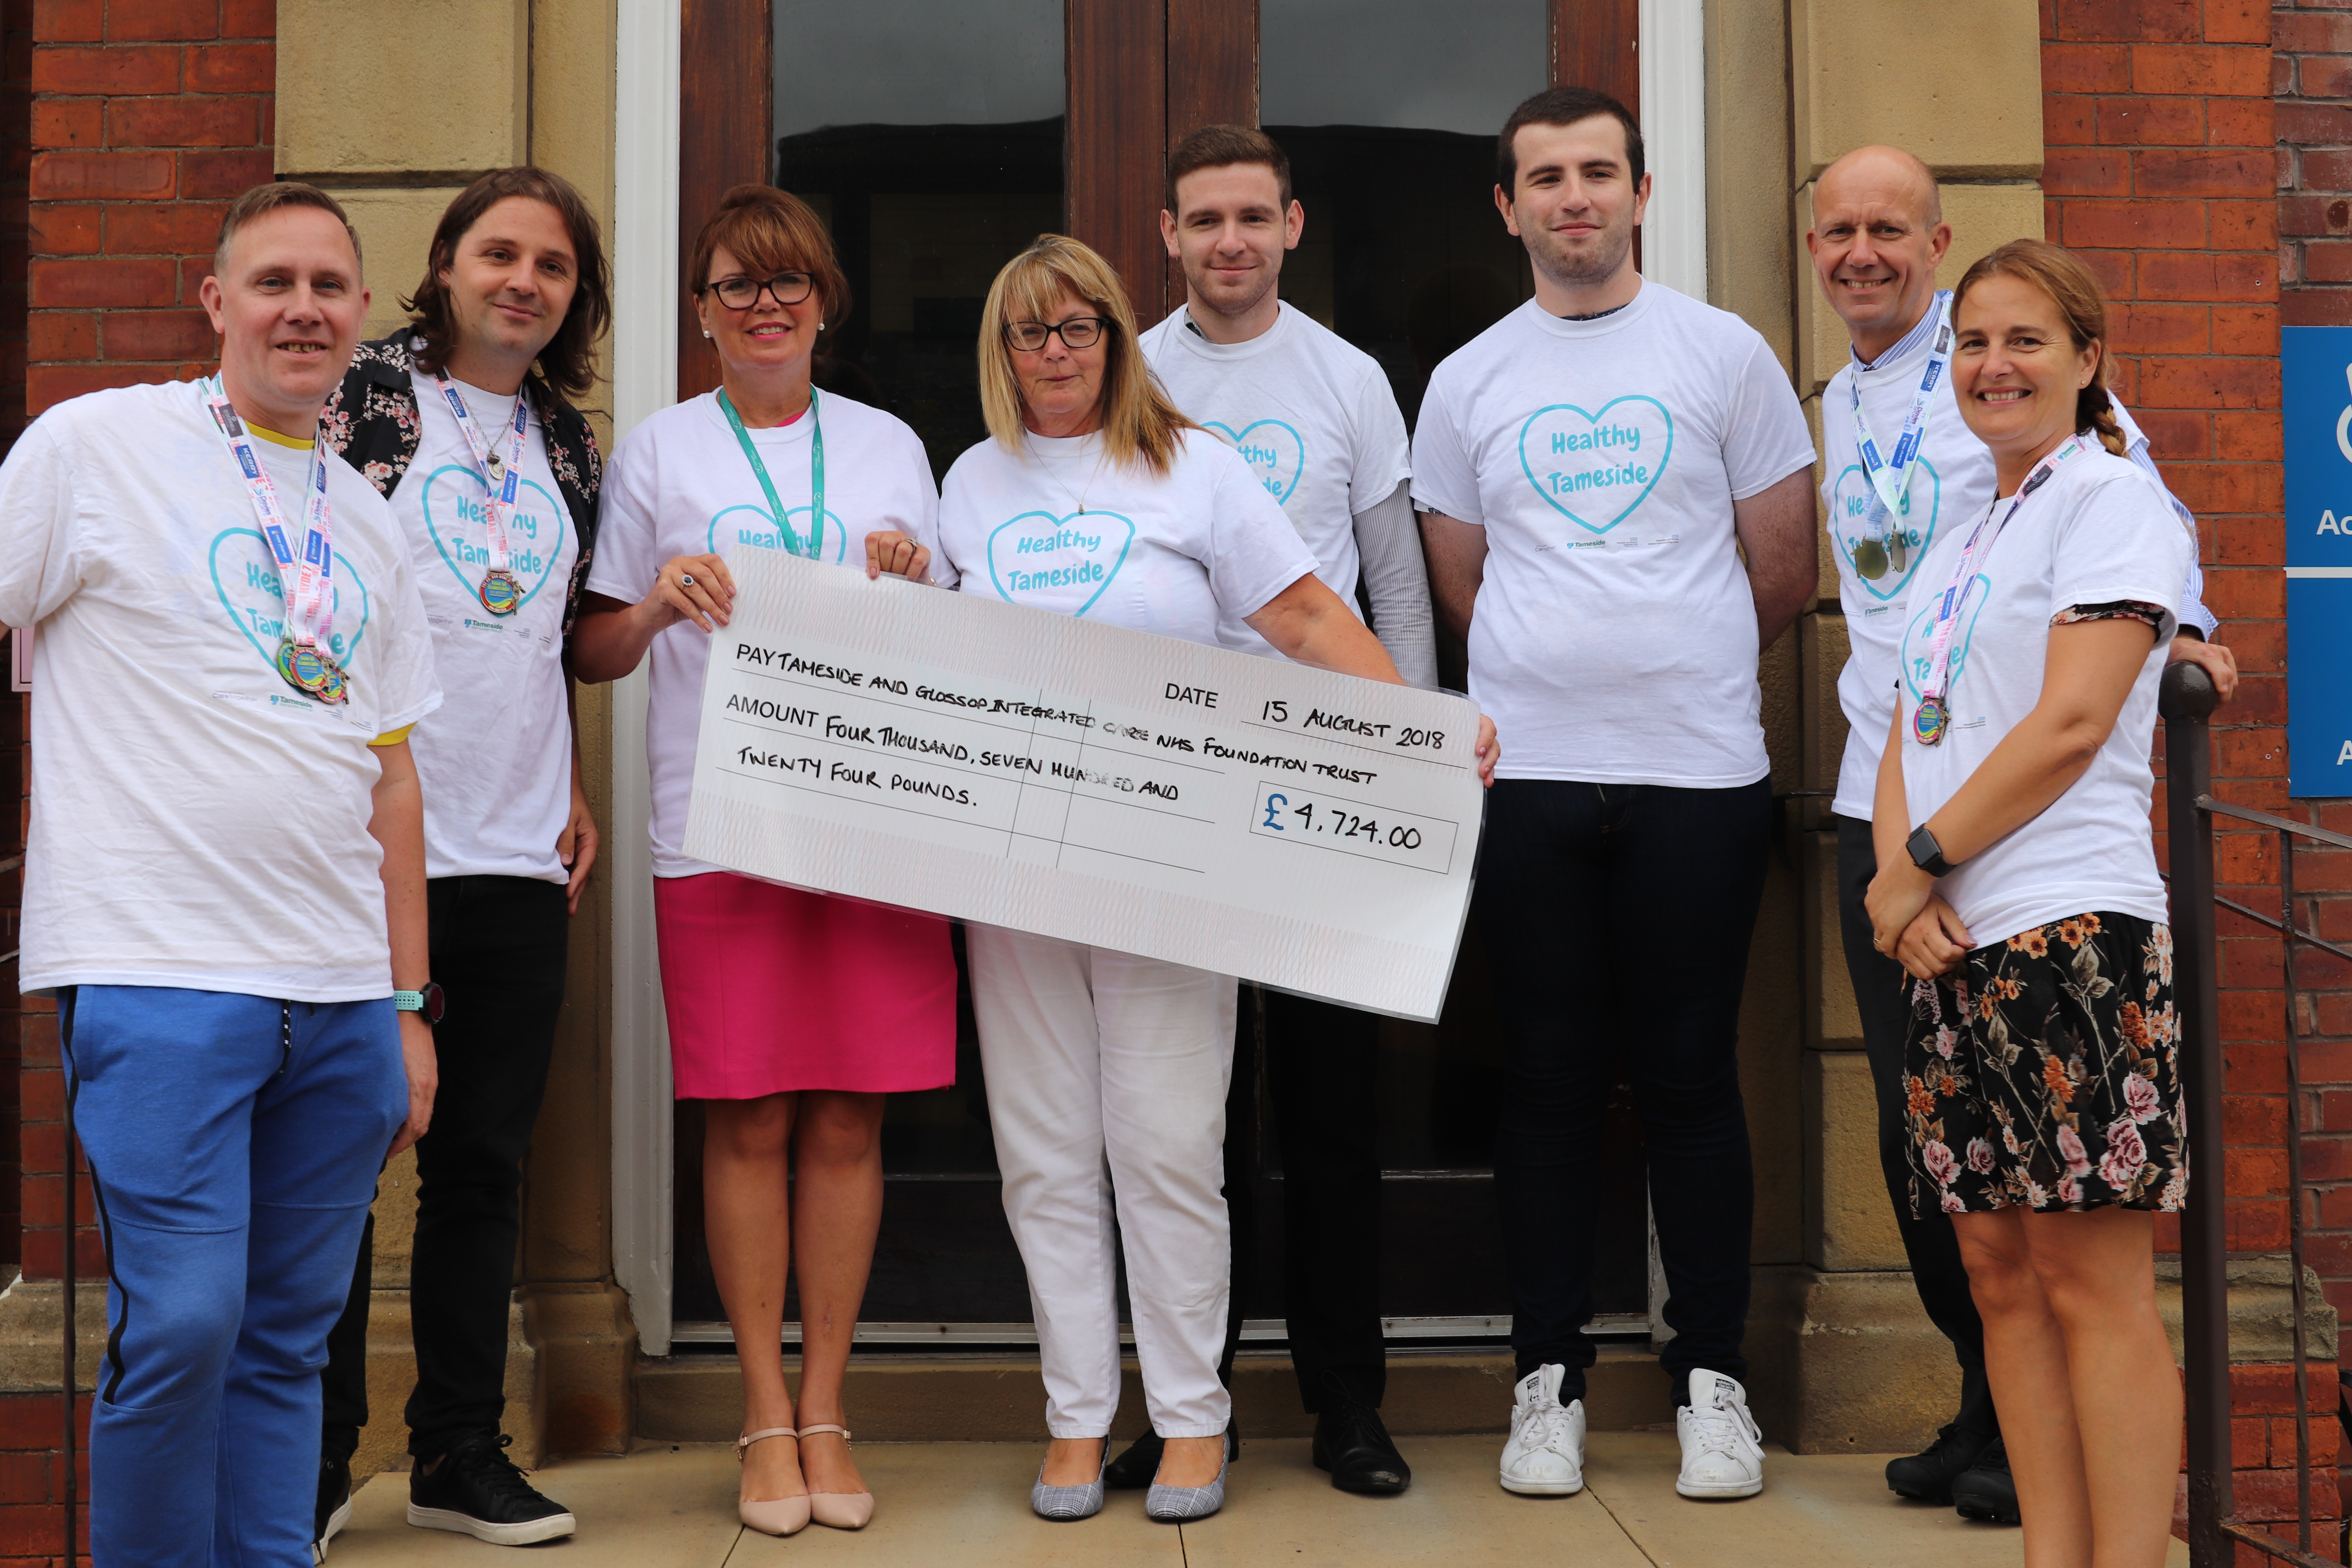 Tameside Hospital benefits from fundraising in memory of late council leader